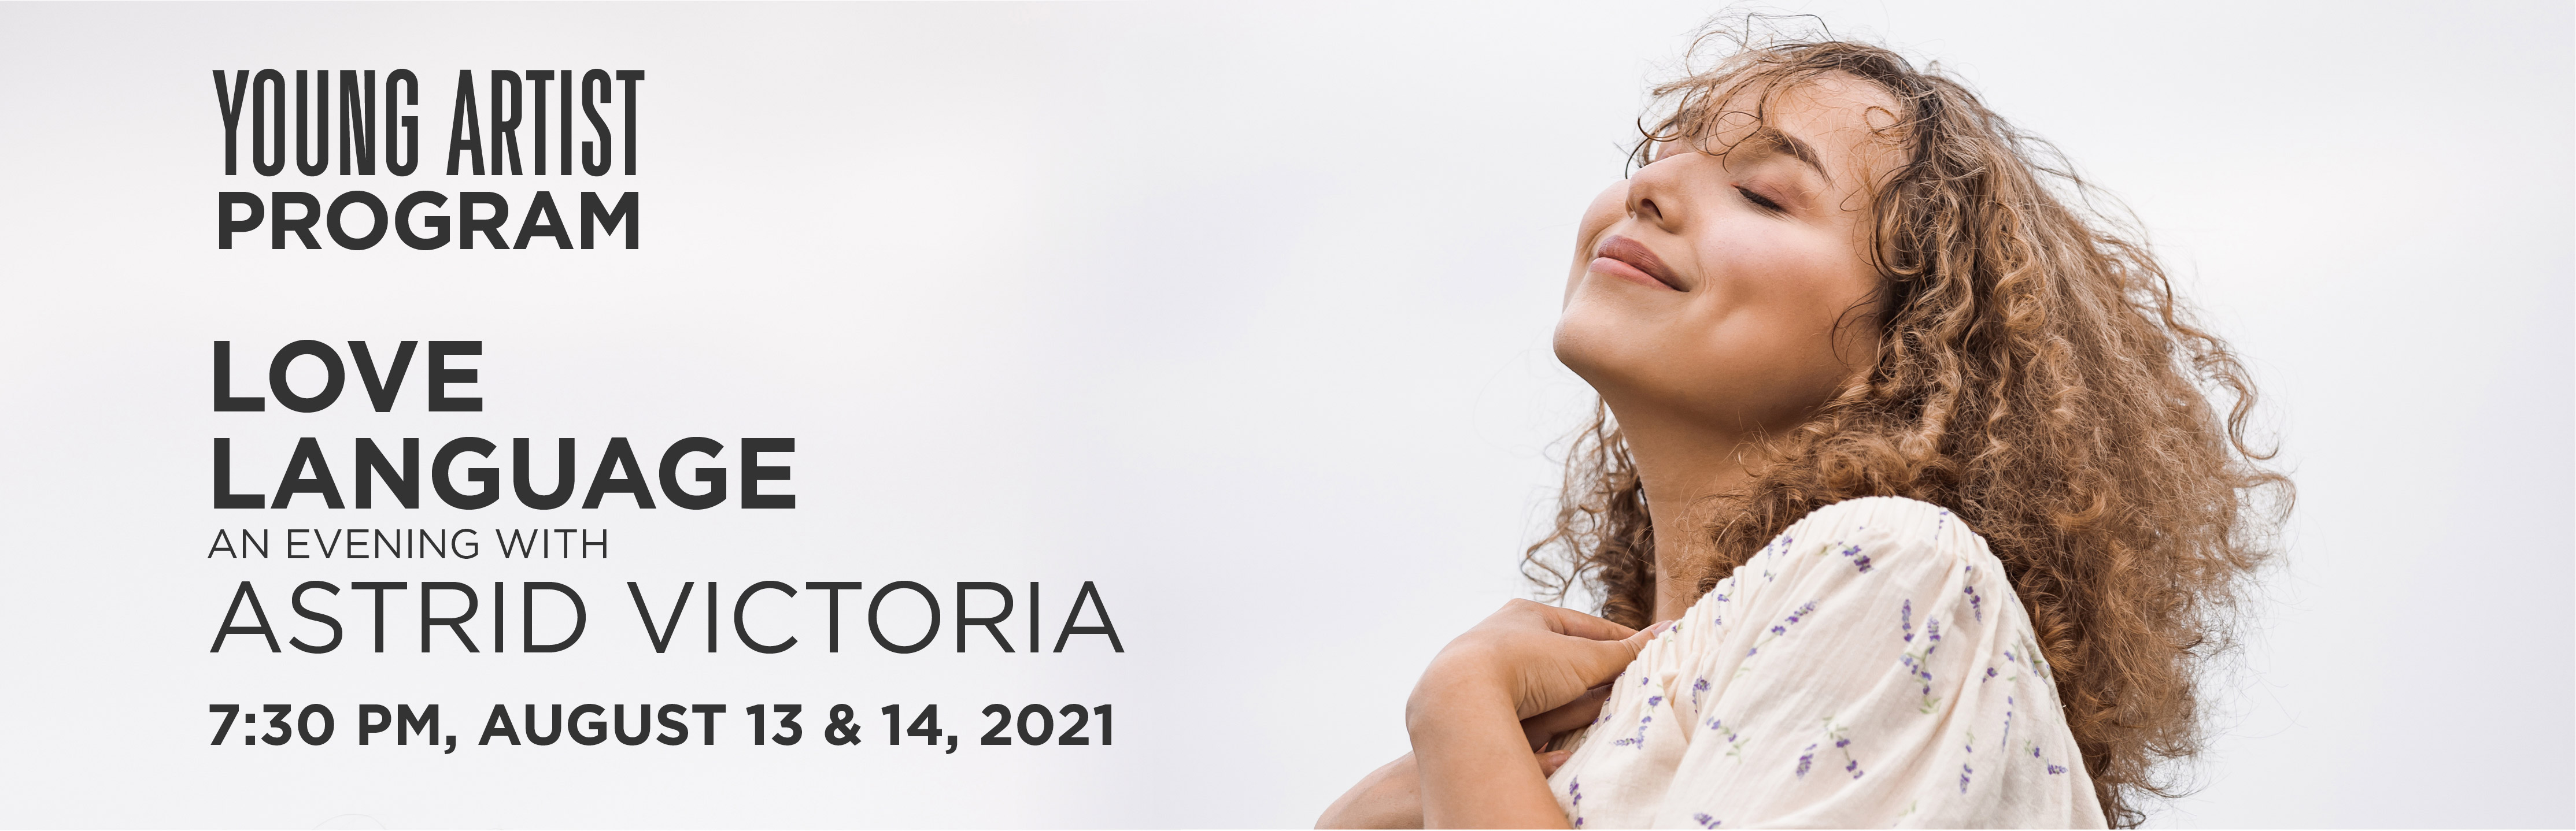 Young Artist Program: Love Language - An Evening with Astrid Victoria, 7:30pm , August 13 and 14, 2021